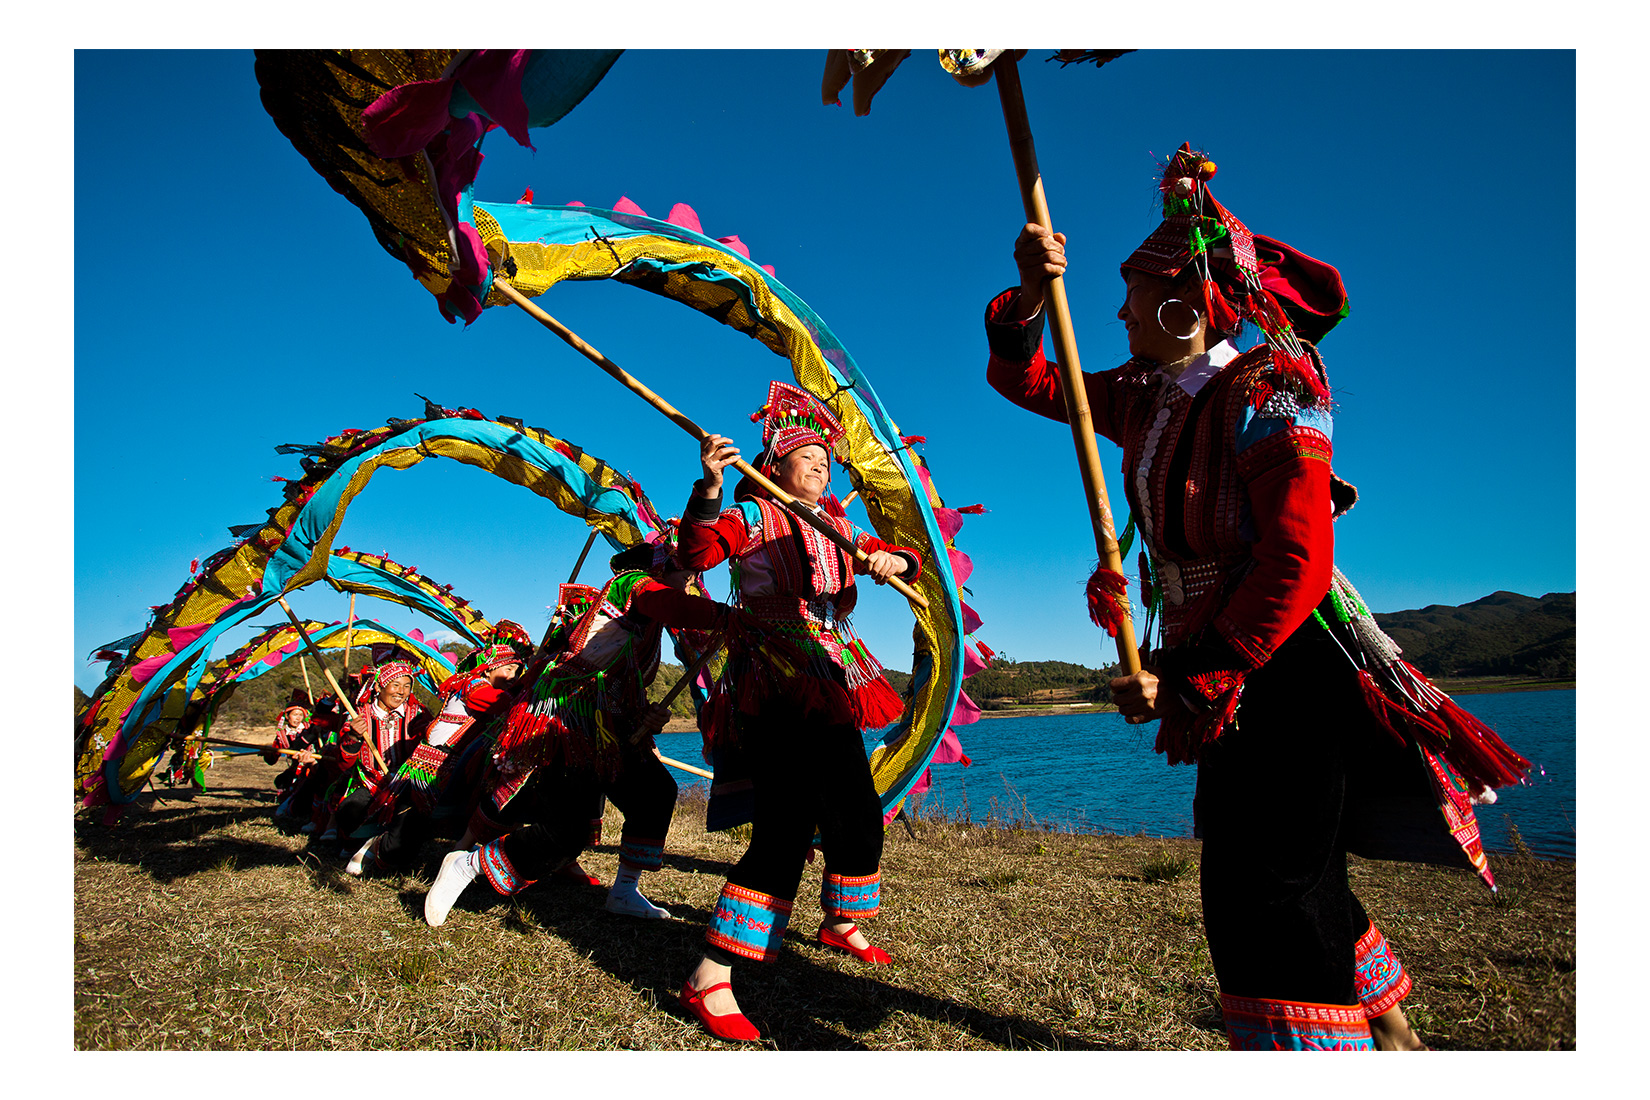 Dragon Dance. Yi Village, Yunnan Province, China